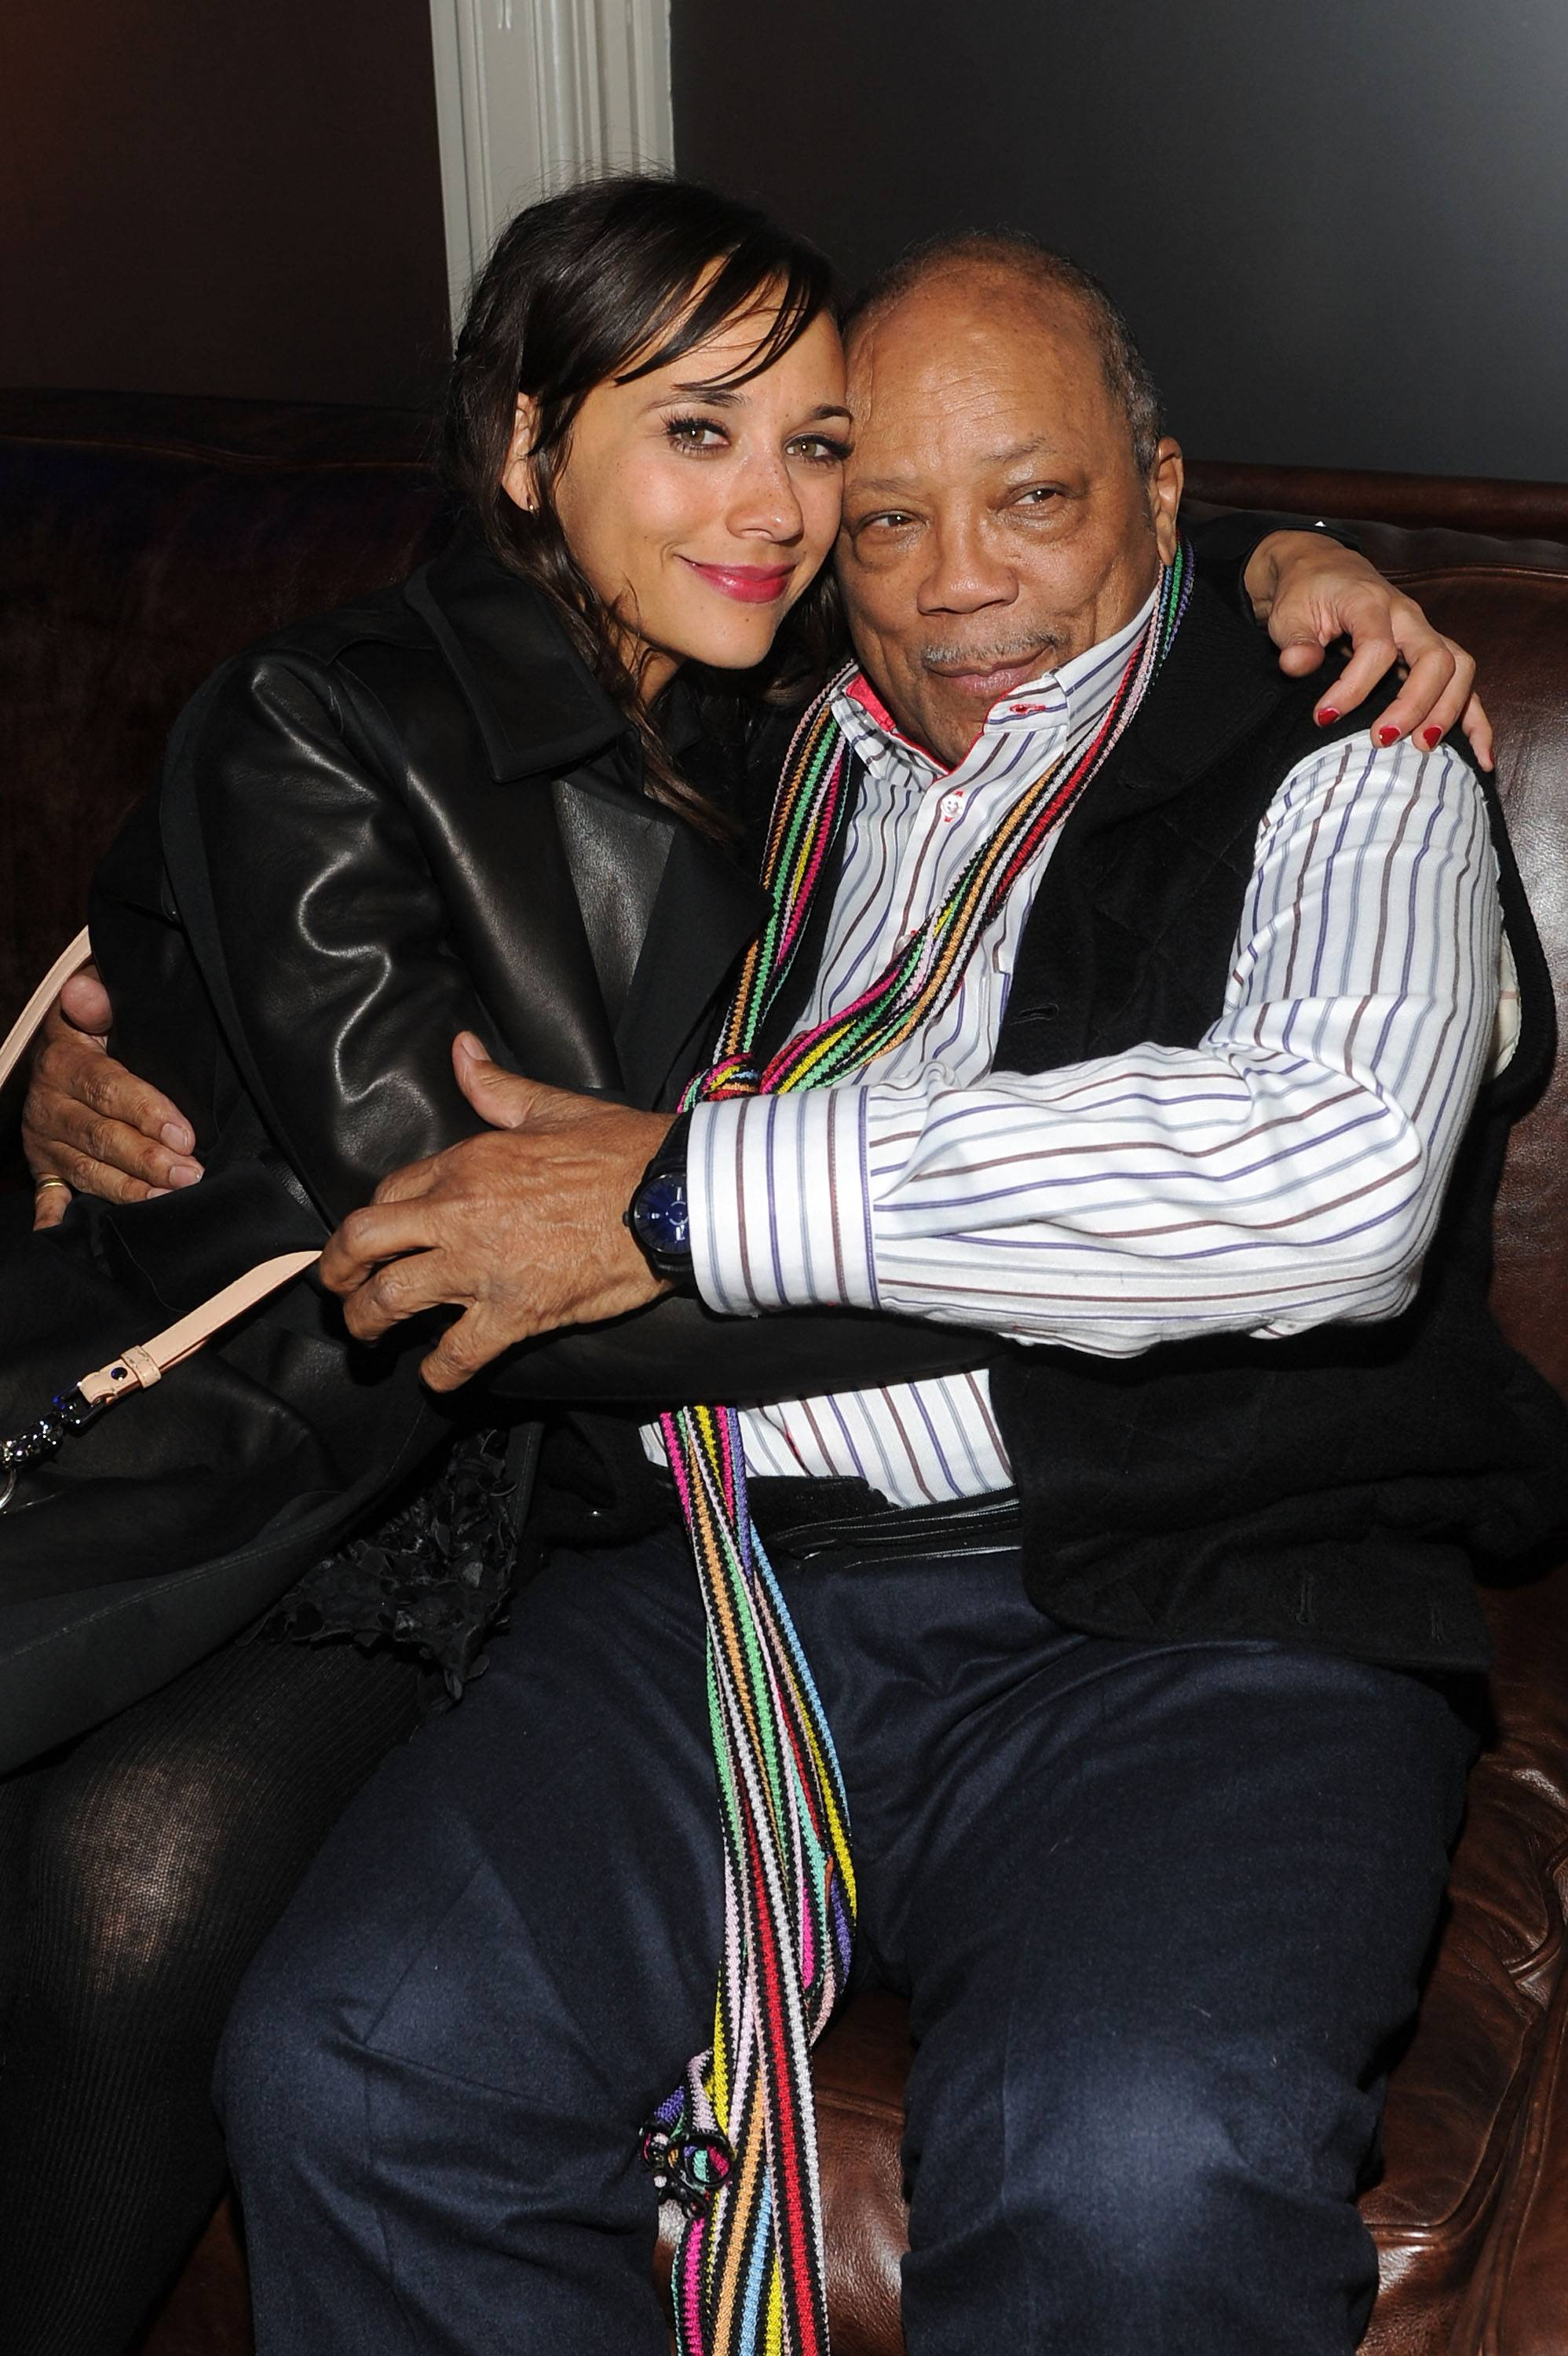 Rashida Jones and Quincy Jones at